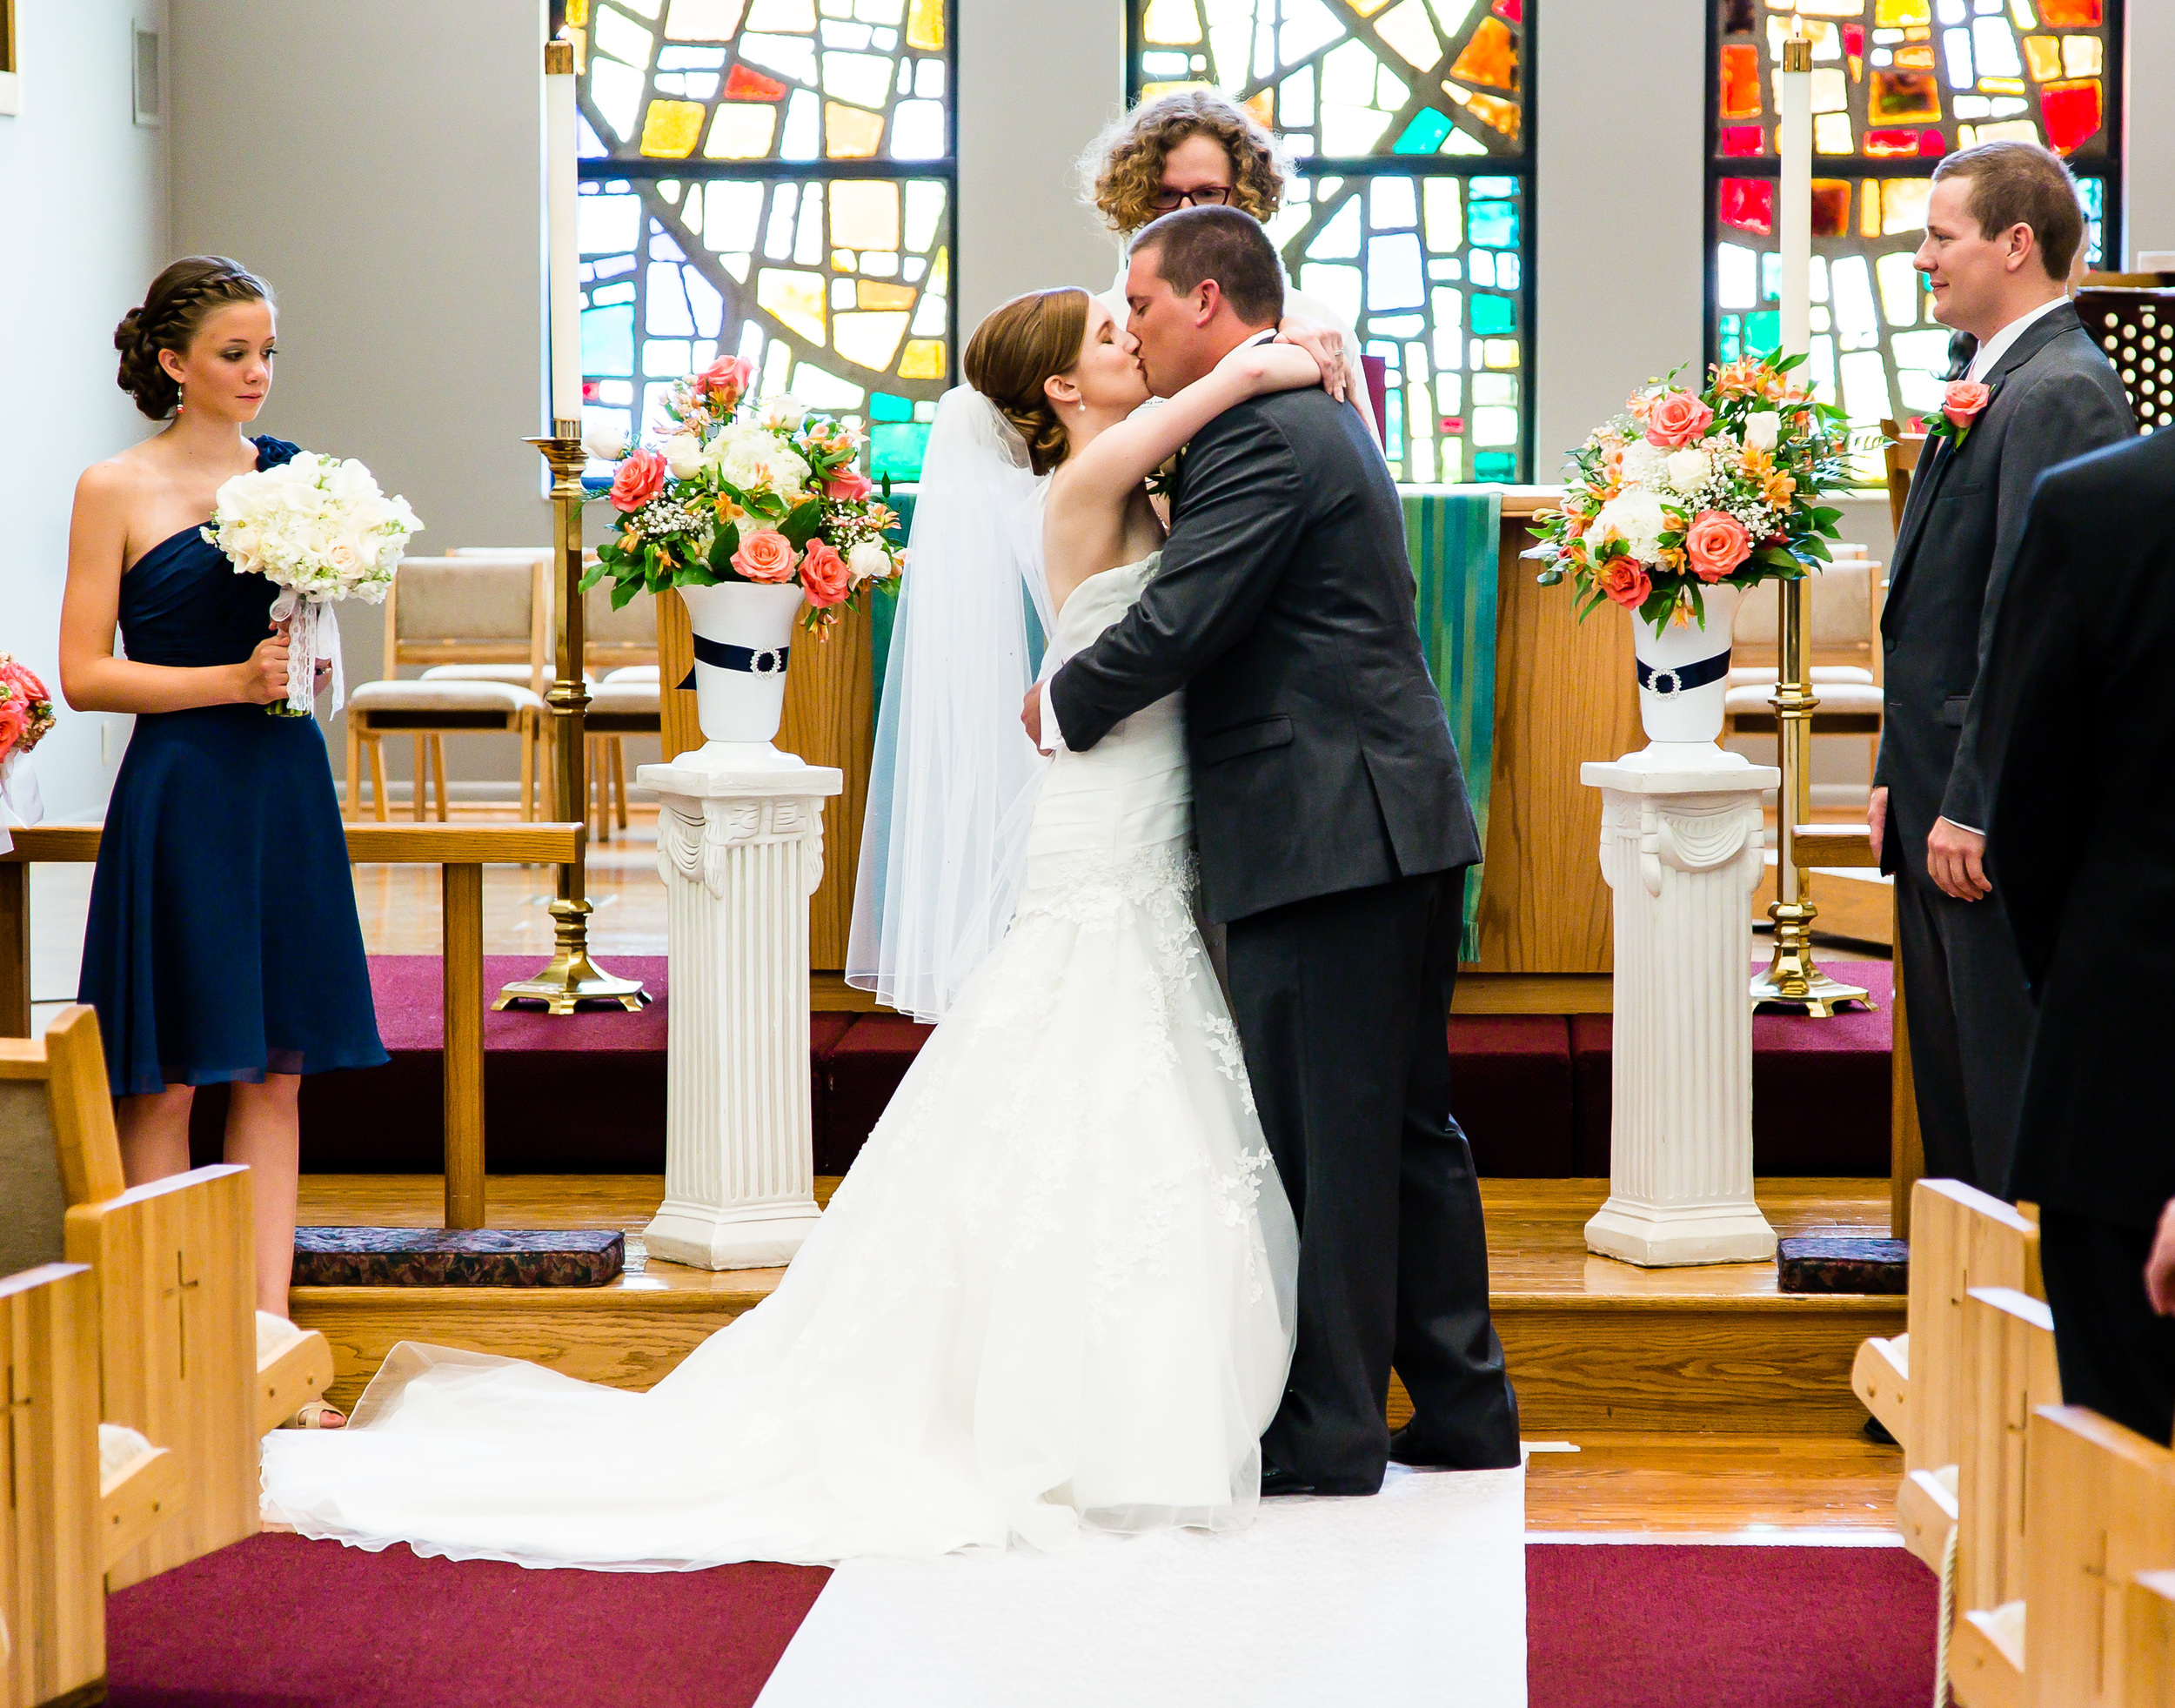 Photograph of bride and groom first kiss